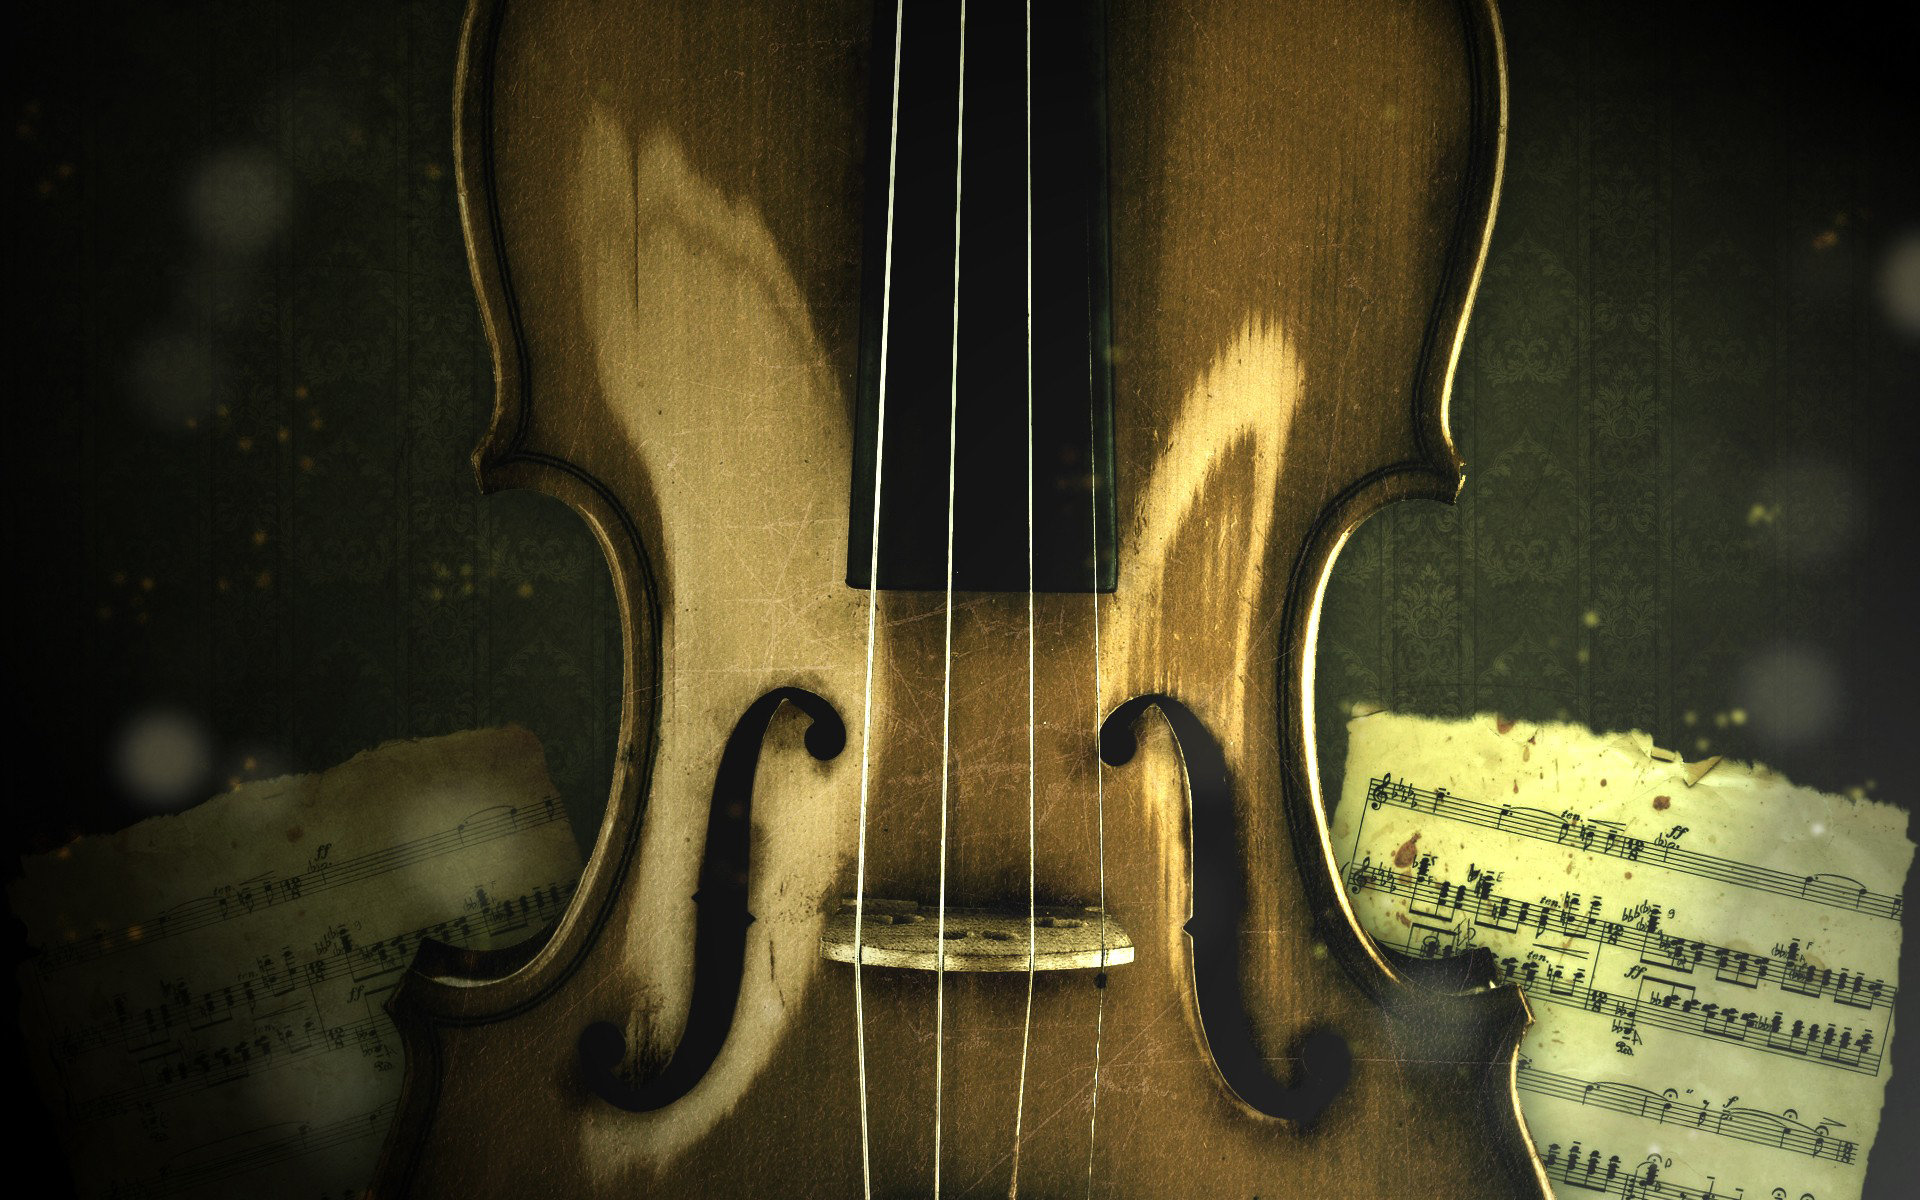 Download hd 1920x1200 Violin computer wallpaper ID:53539 for free